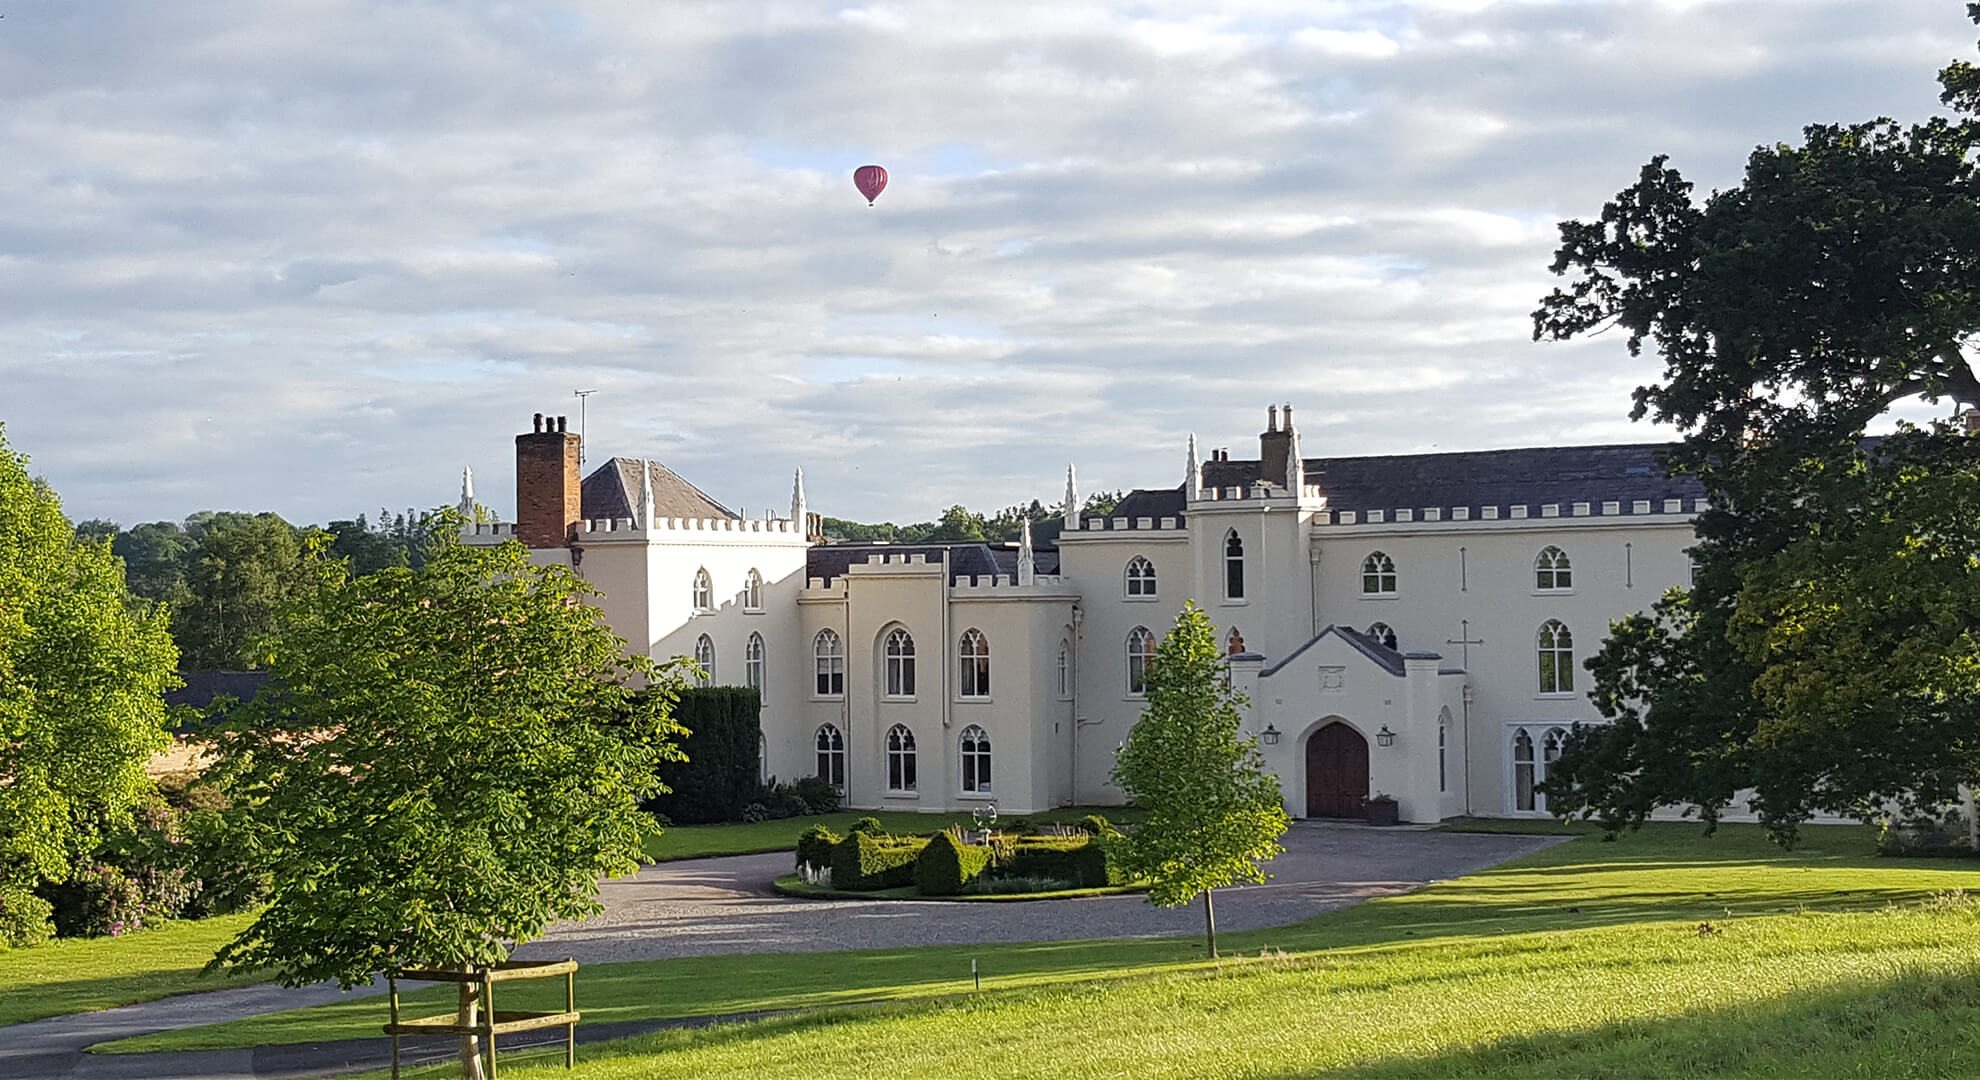 A hot air balloon over The Abbey - one of the many exciting things that take place at Combermere Abbey